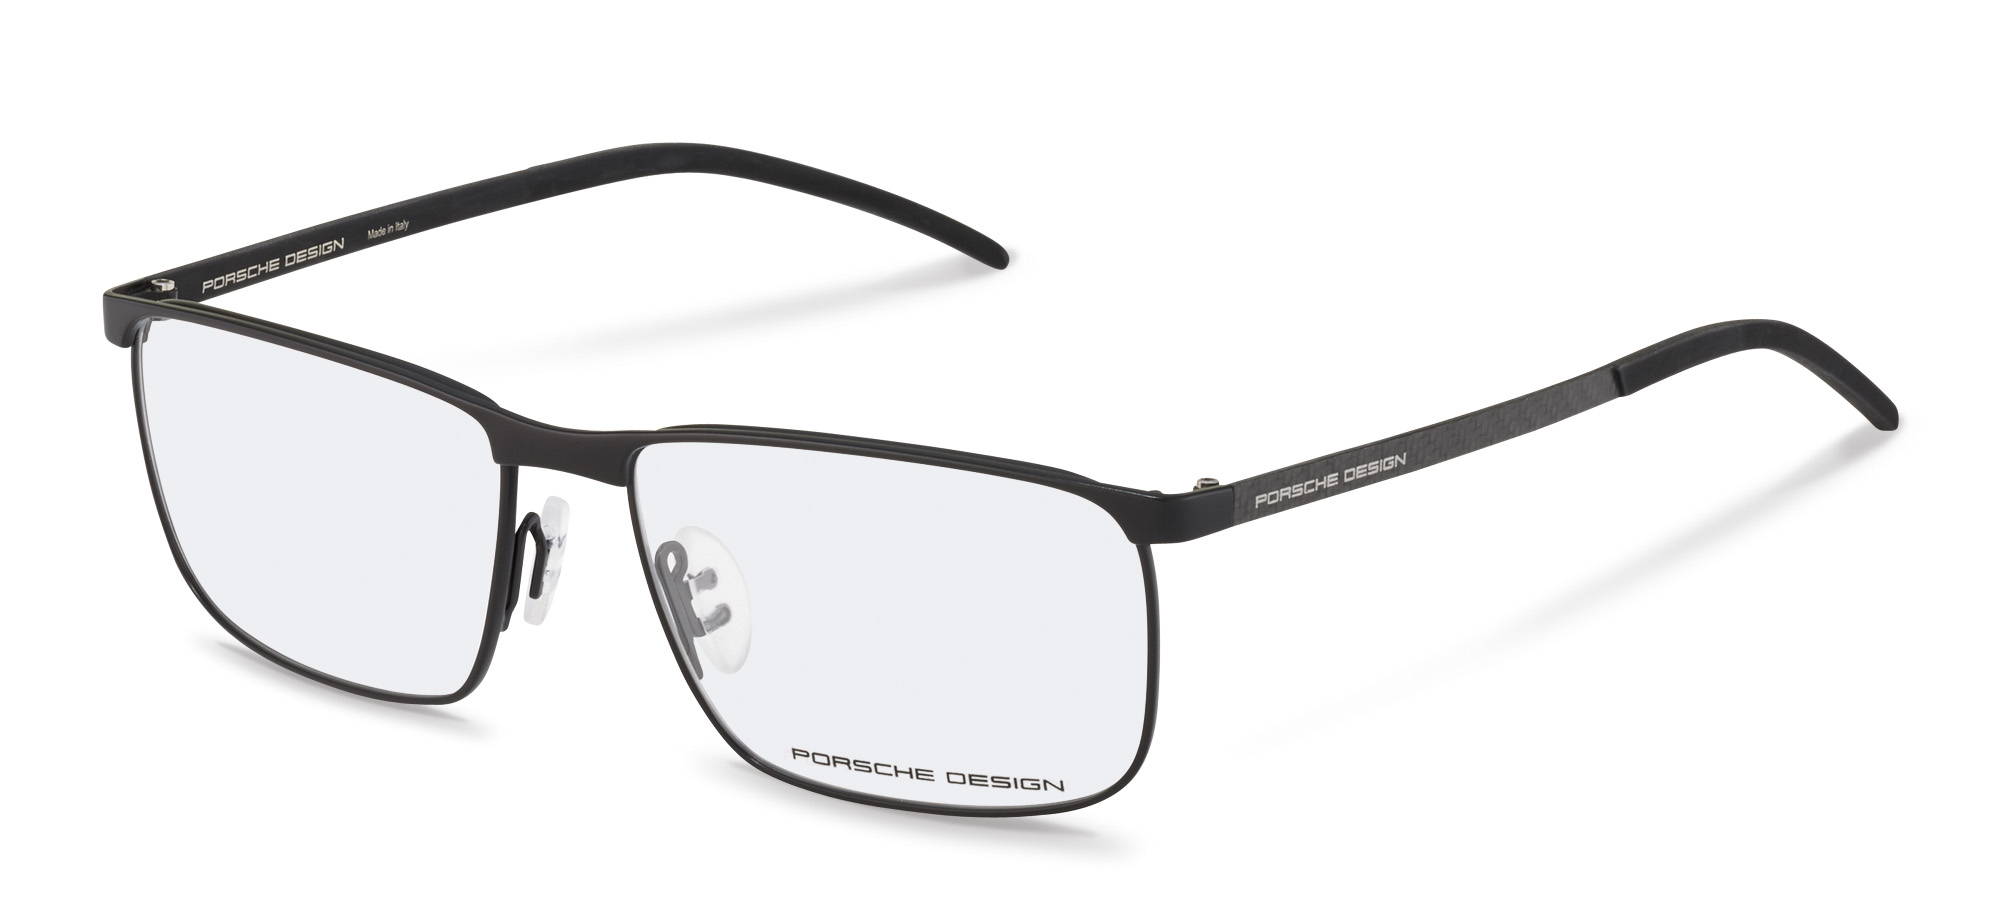 Porsche Design-Correction frame-P8339-black